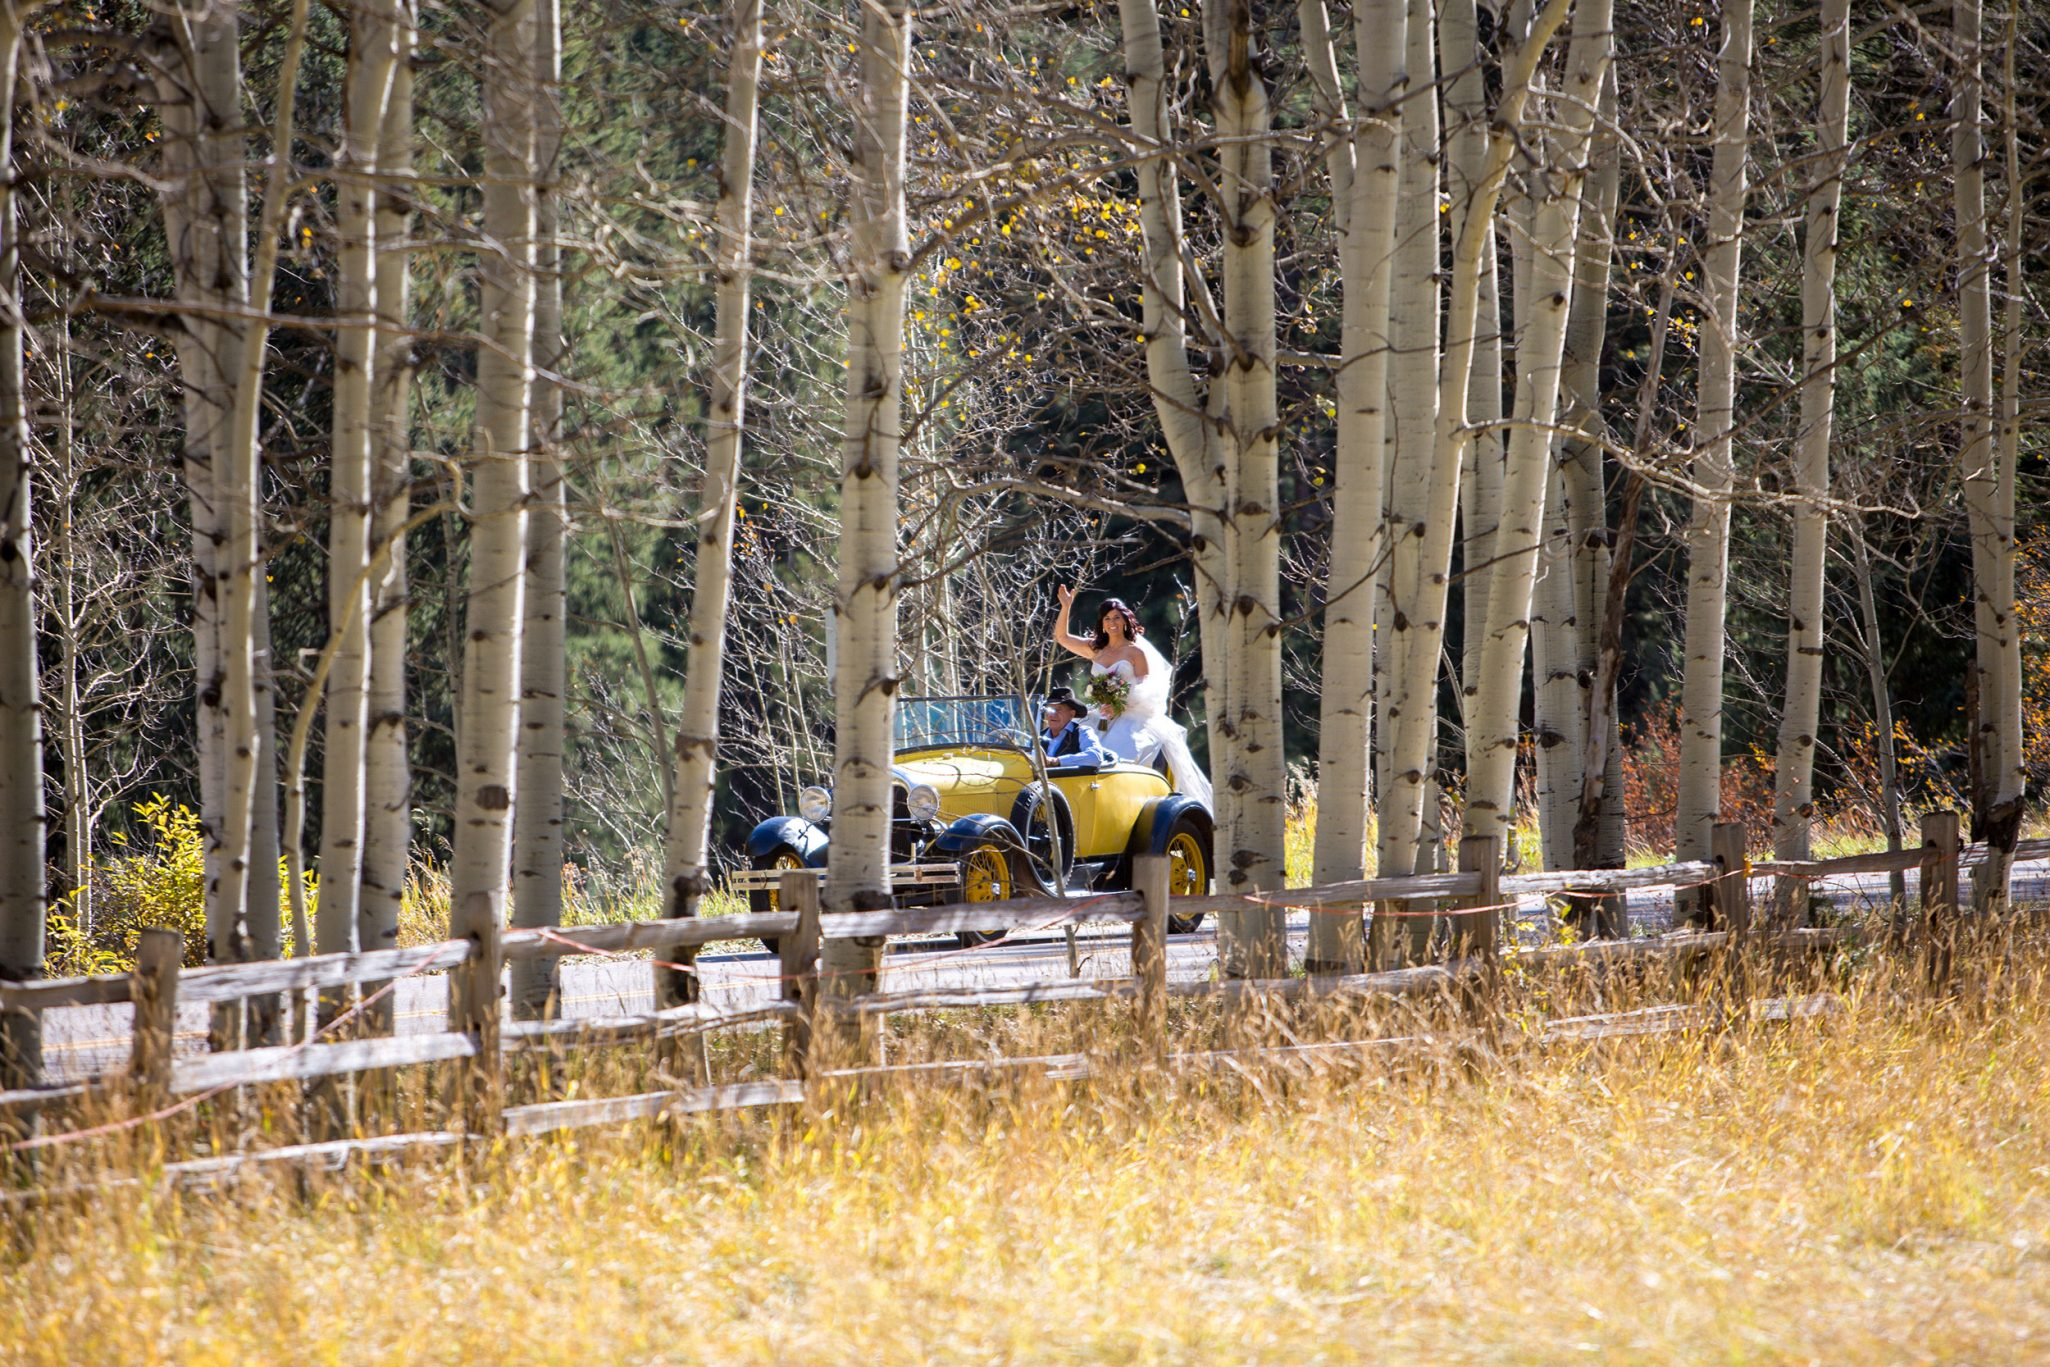 Bride arrives to the Ceremony | A Fall Aspen Wedding at T Lazy 7 Ranch, Colorado